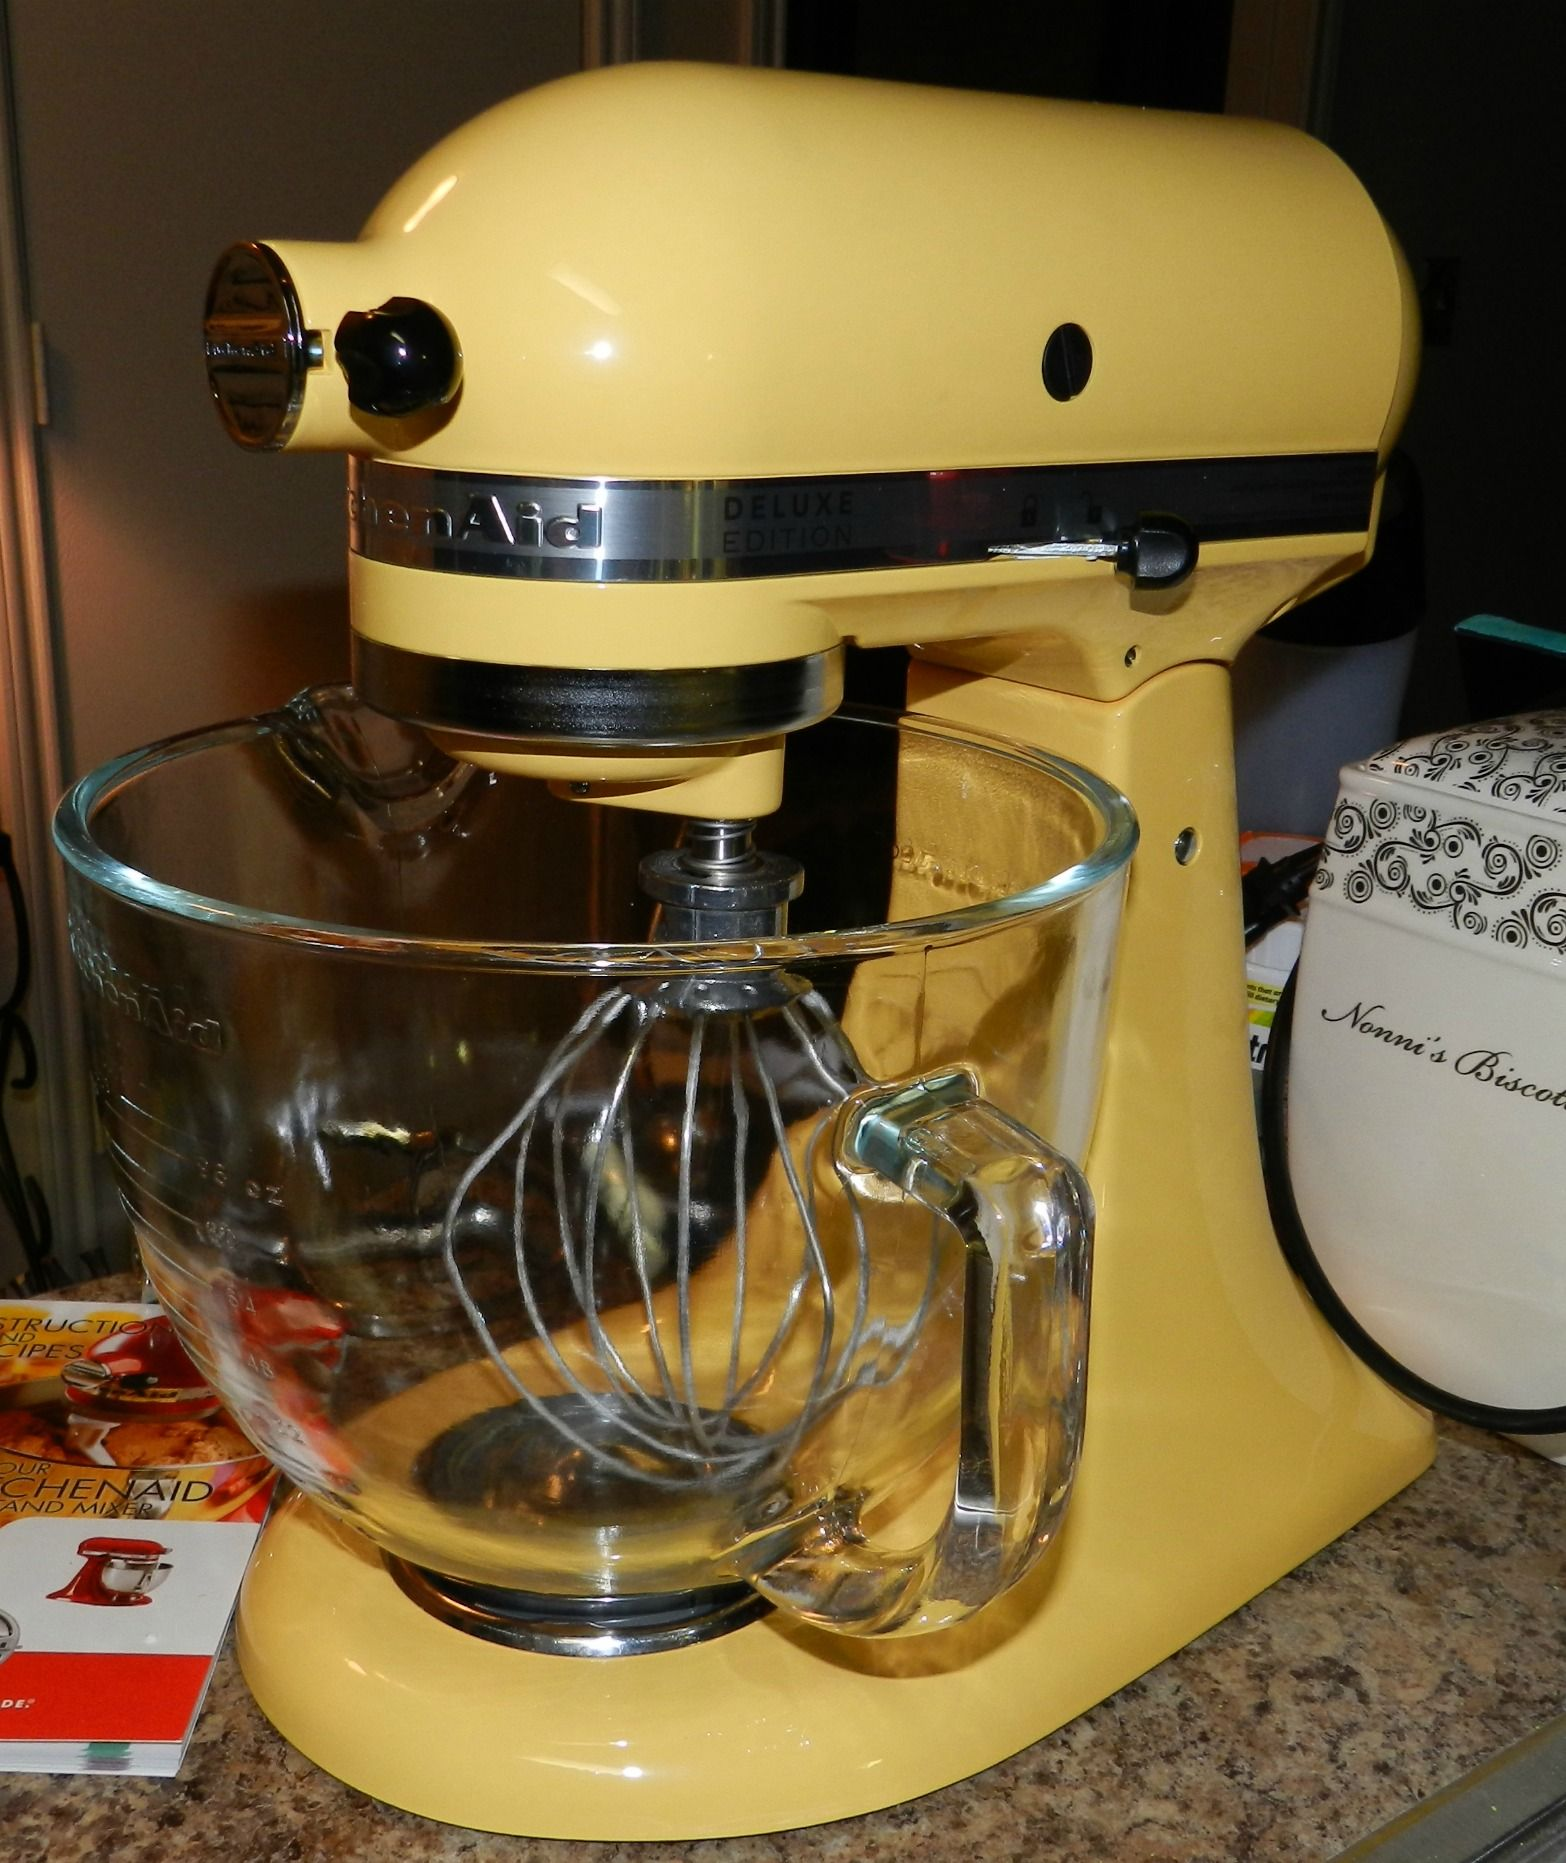 Kitchenaid Ksm150psbf Artisan 5 Quart Stand Mixer